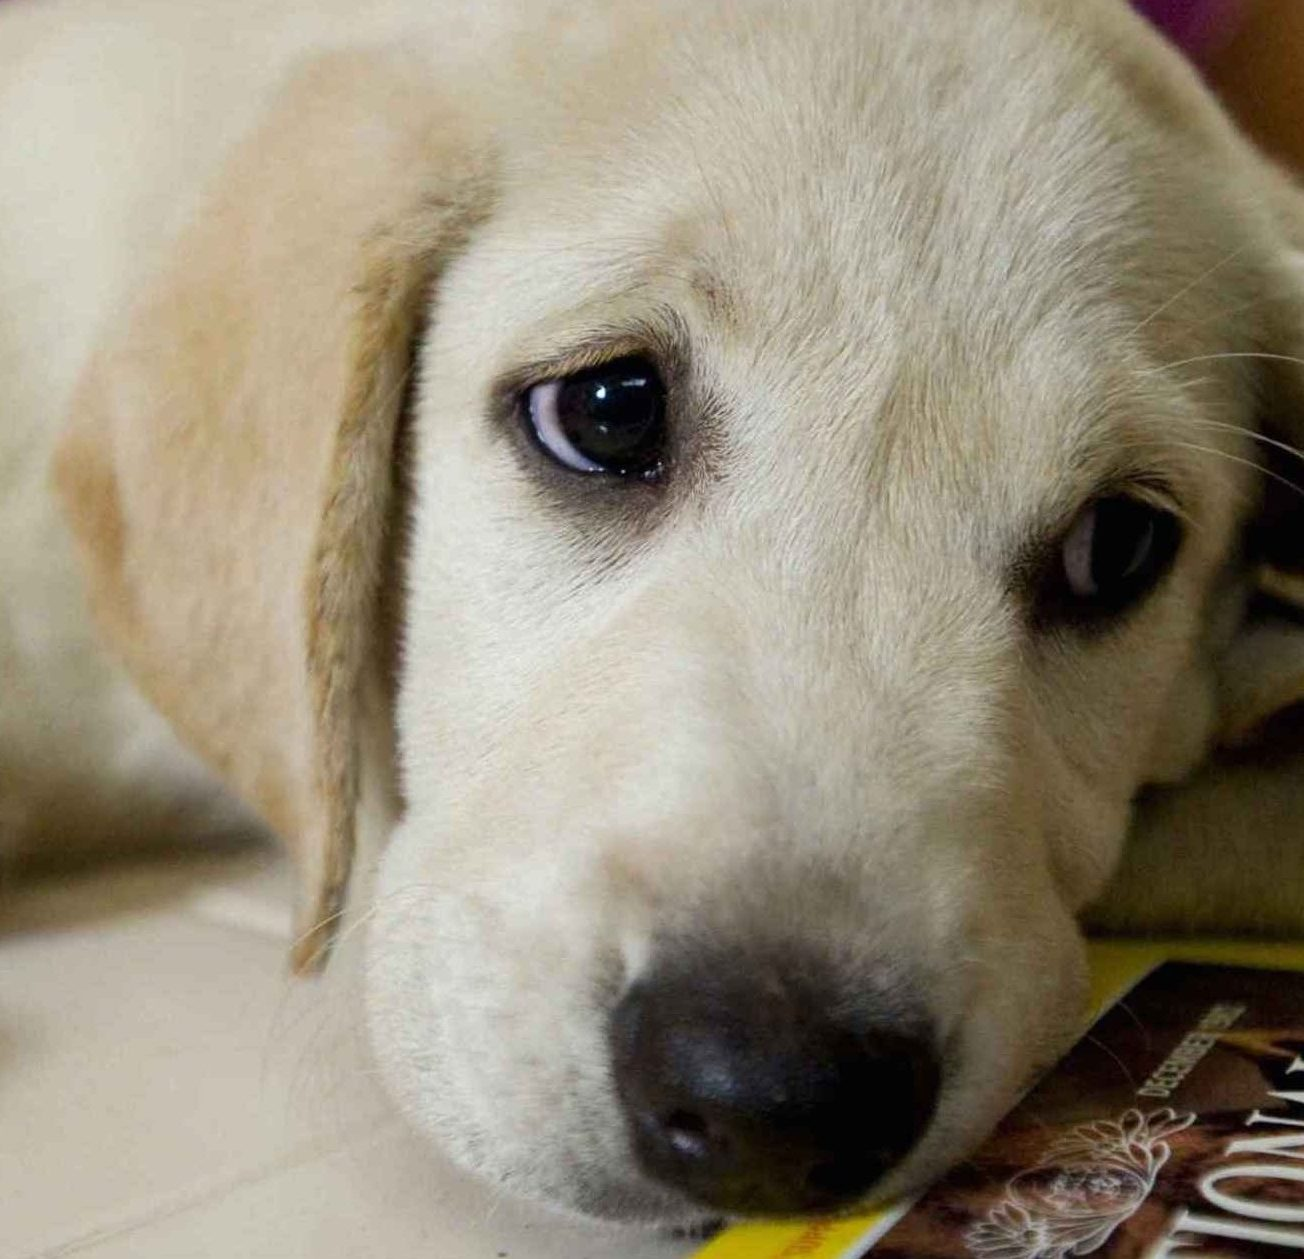 Marley and Me e1597750795408 20 Unbelievable Films You Didn't Know Were Actually Based On True Stories